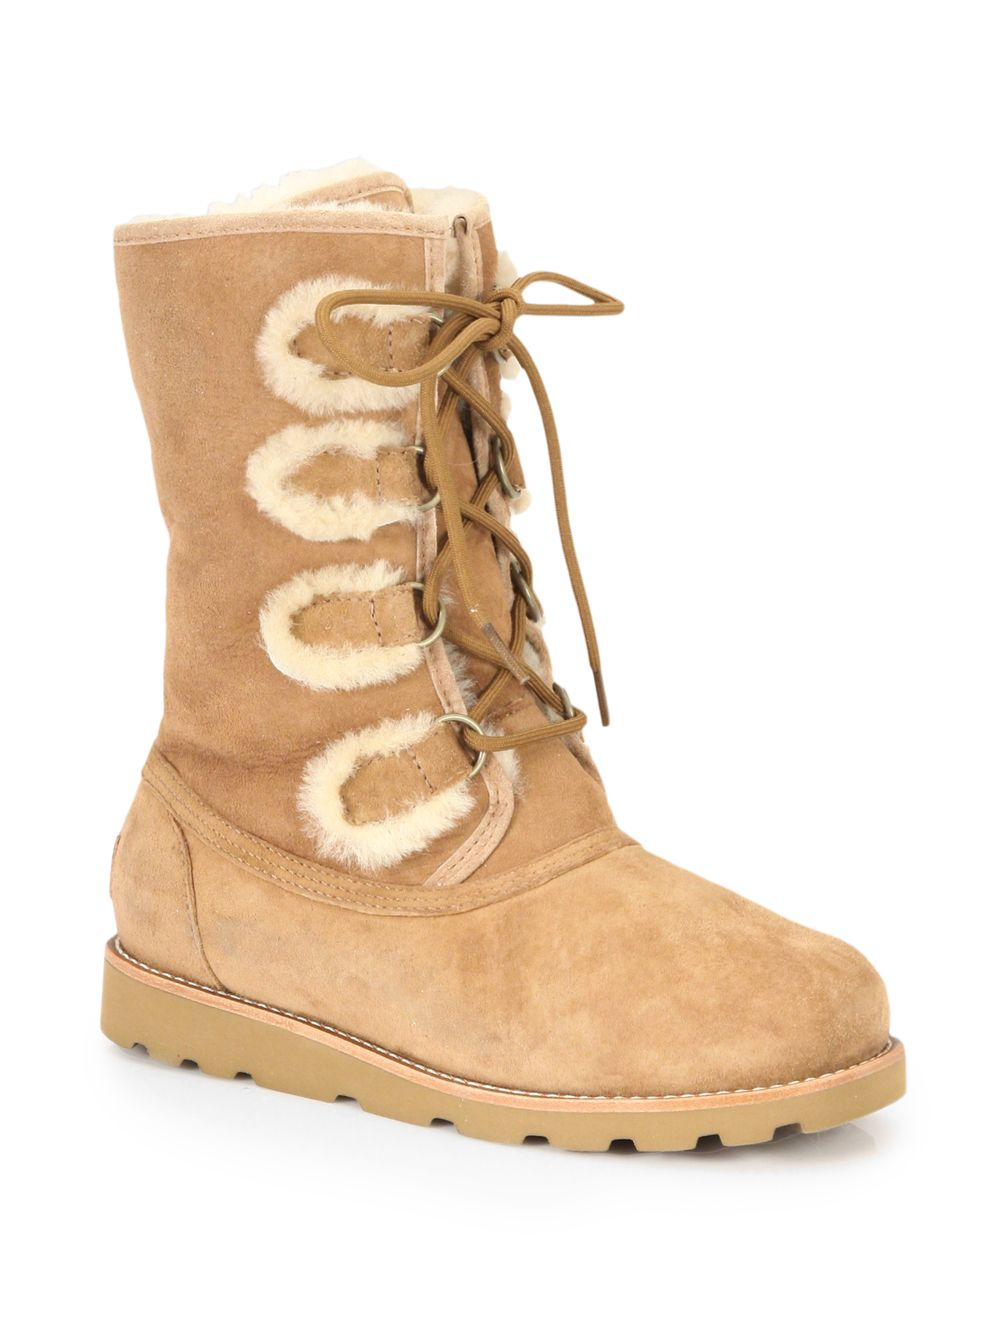 australian ugg boots lace up